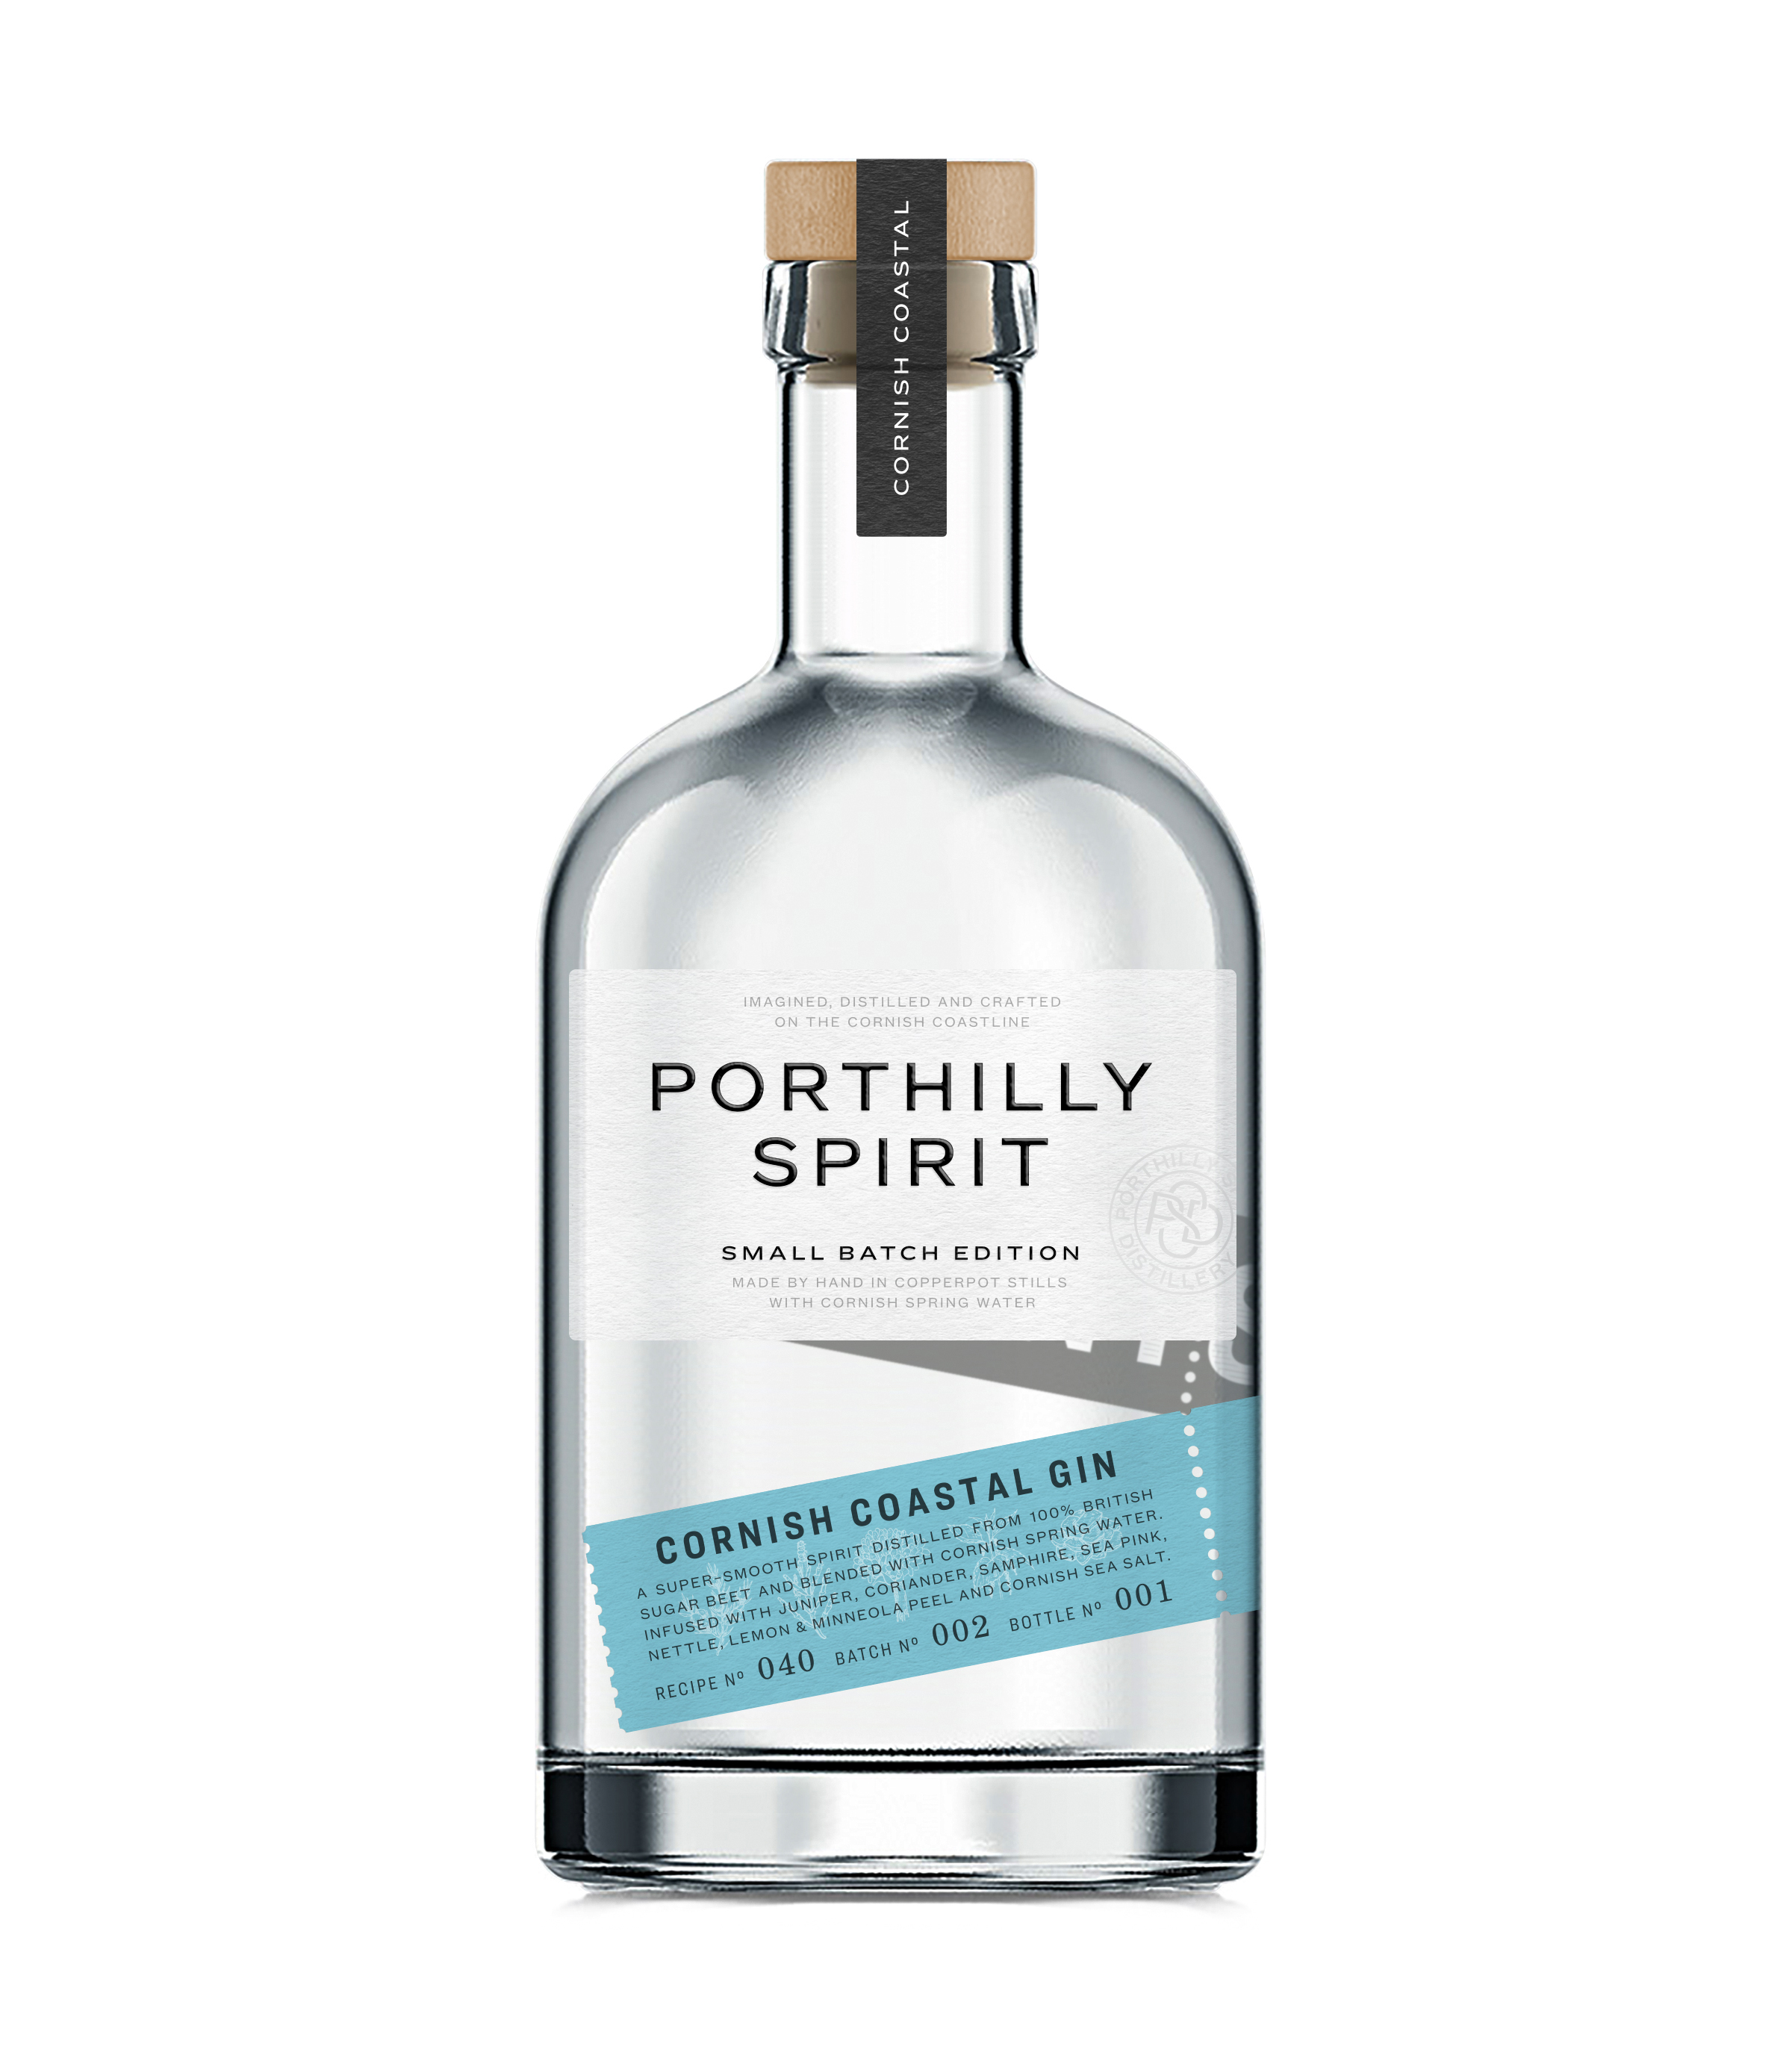 CORNISH COASTAL GINDry, refreshing & DISTINCTIVE - Every batch of Porthilly Spirit Cornish Coastal Gin begins as a clean spirit distilled from British Sugar Beet and blended with Cornish spring water. It is then infused with a unique blend of local botanicals. These specially selected ingredients create a dry yet refreshing premium Gin with wonderful complexity. Enjoy straight over ice, or mixed with a premium tonic and a garnish of citrus.